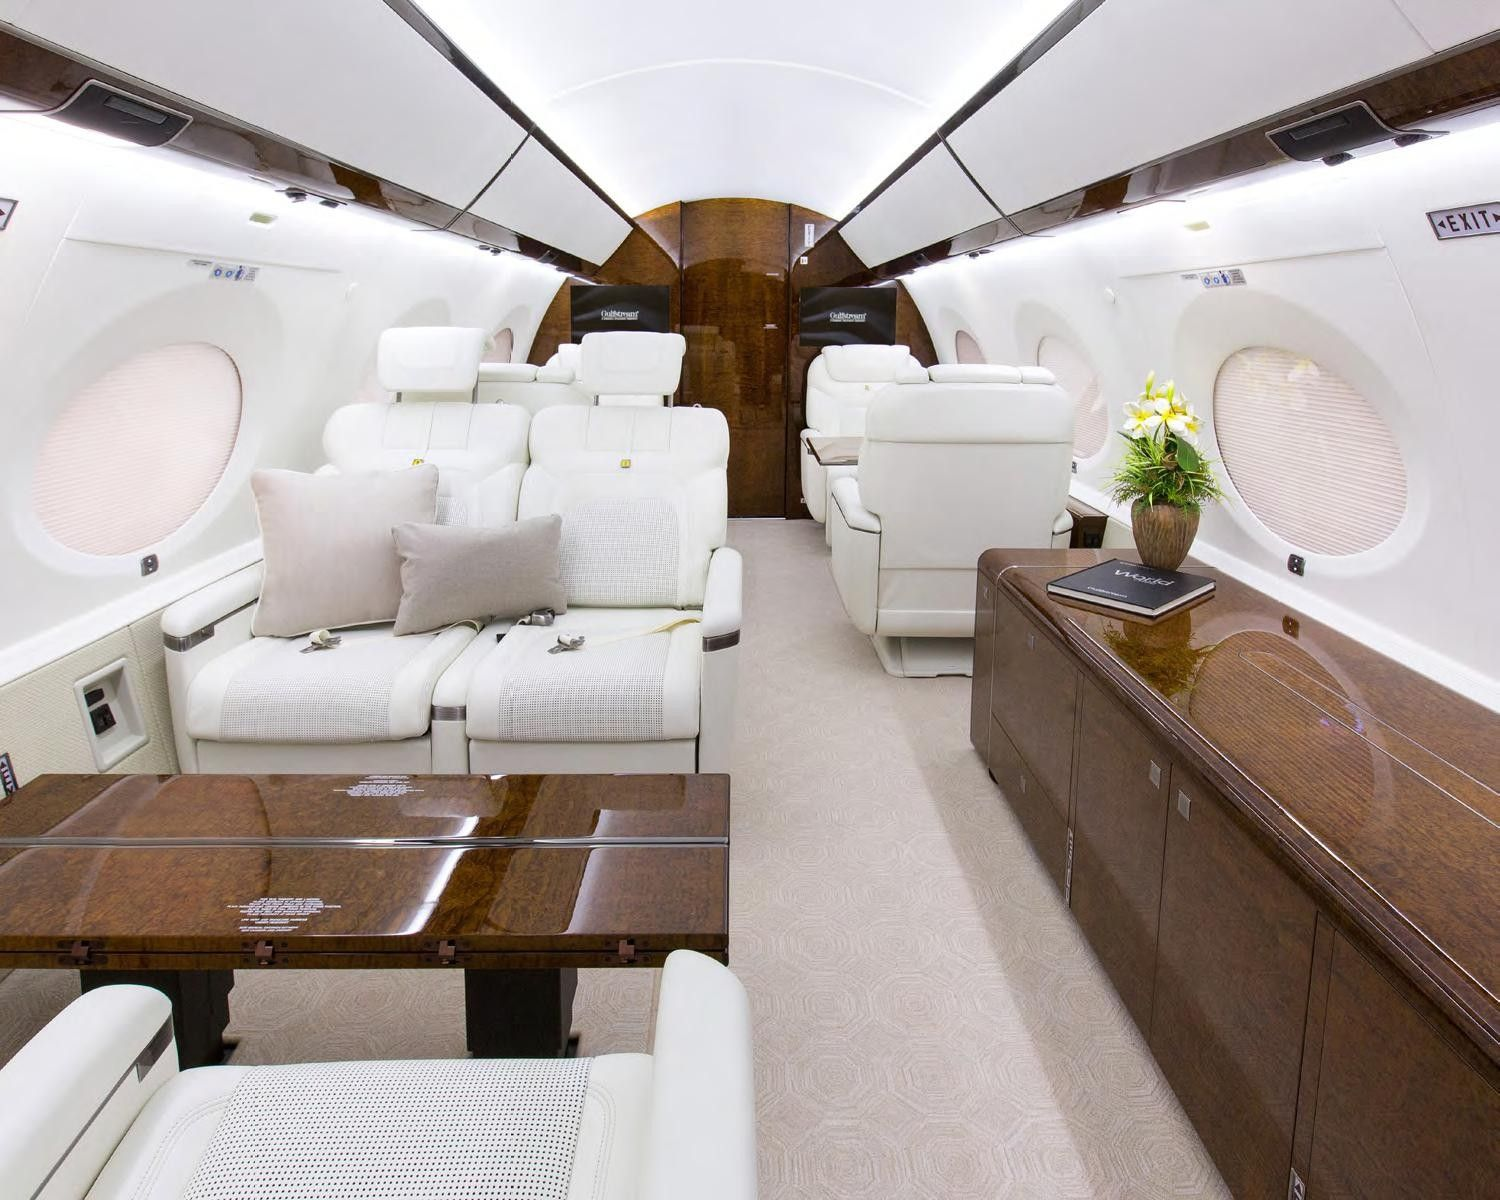 Pin by Ryan DiVita on Aviation Boeing business jet, Jet